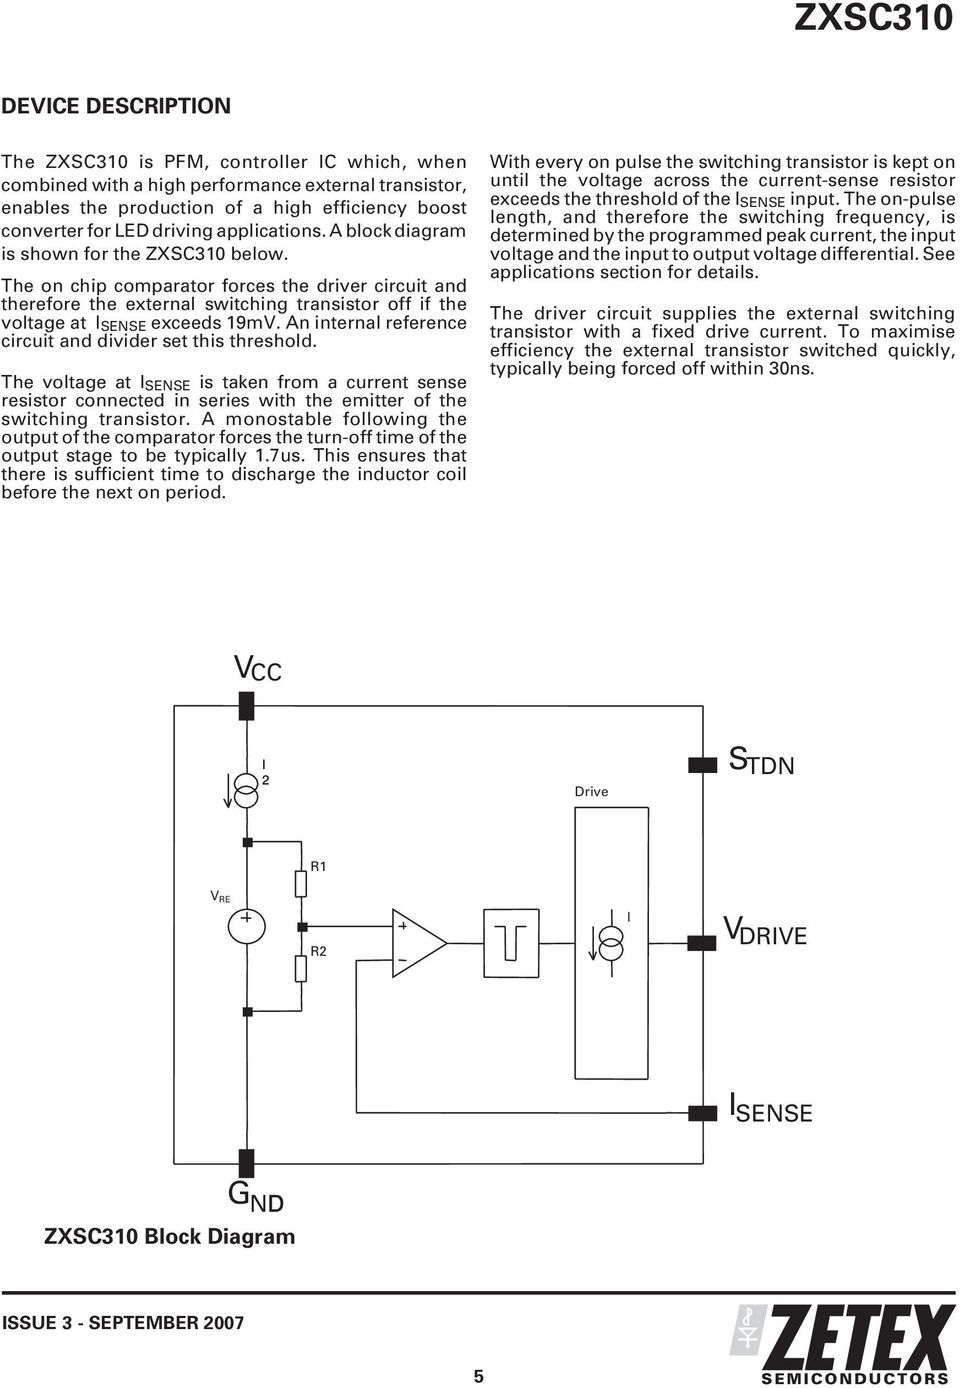 Zxsc310 Led Driver Solution For Lcd Backlighting Features Typical Correctness Of High Brightness Circuit Schematic Included The On Chip Comparator Forces And Therefore External Switching Transistor Off If